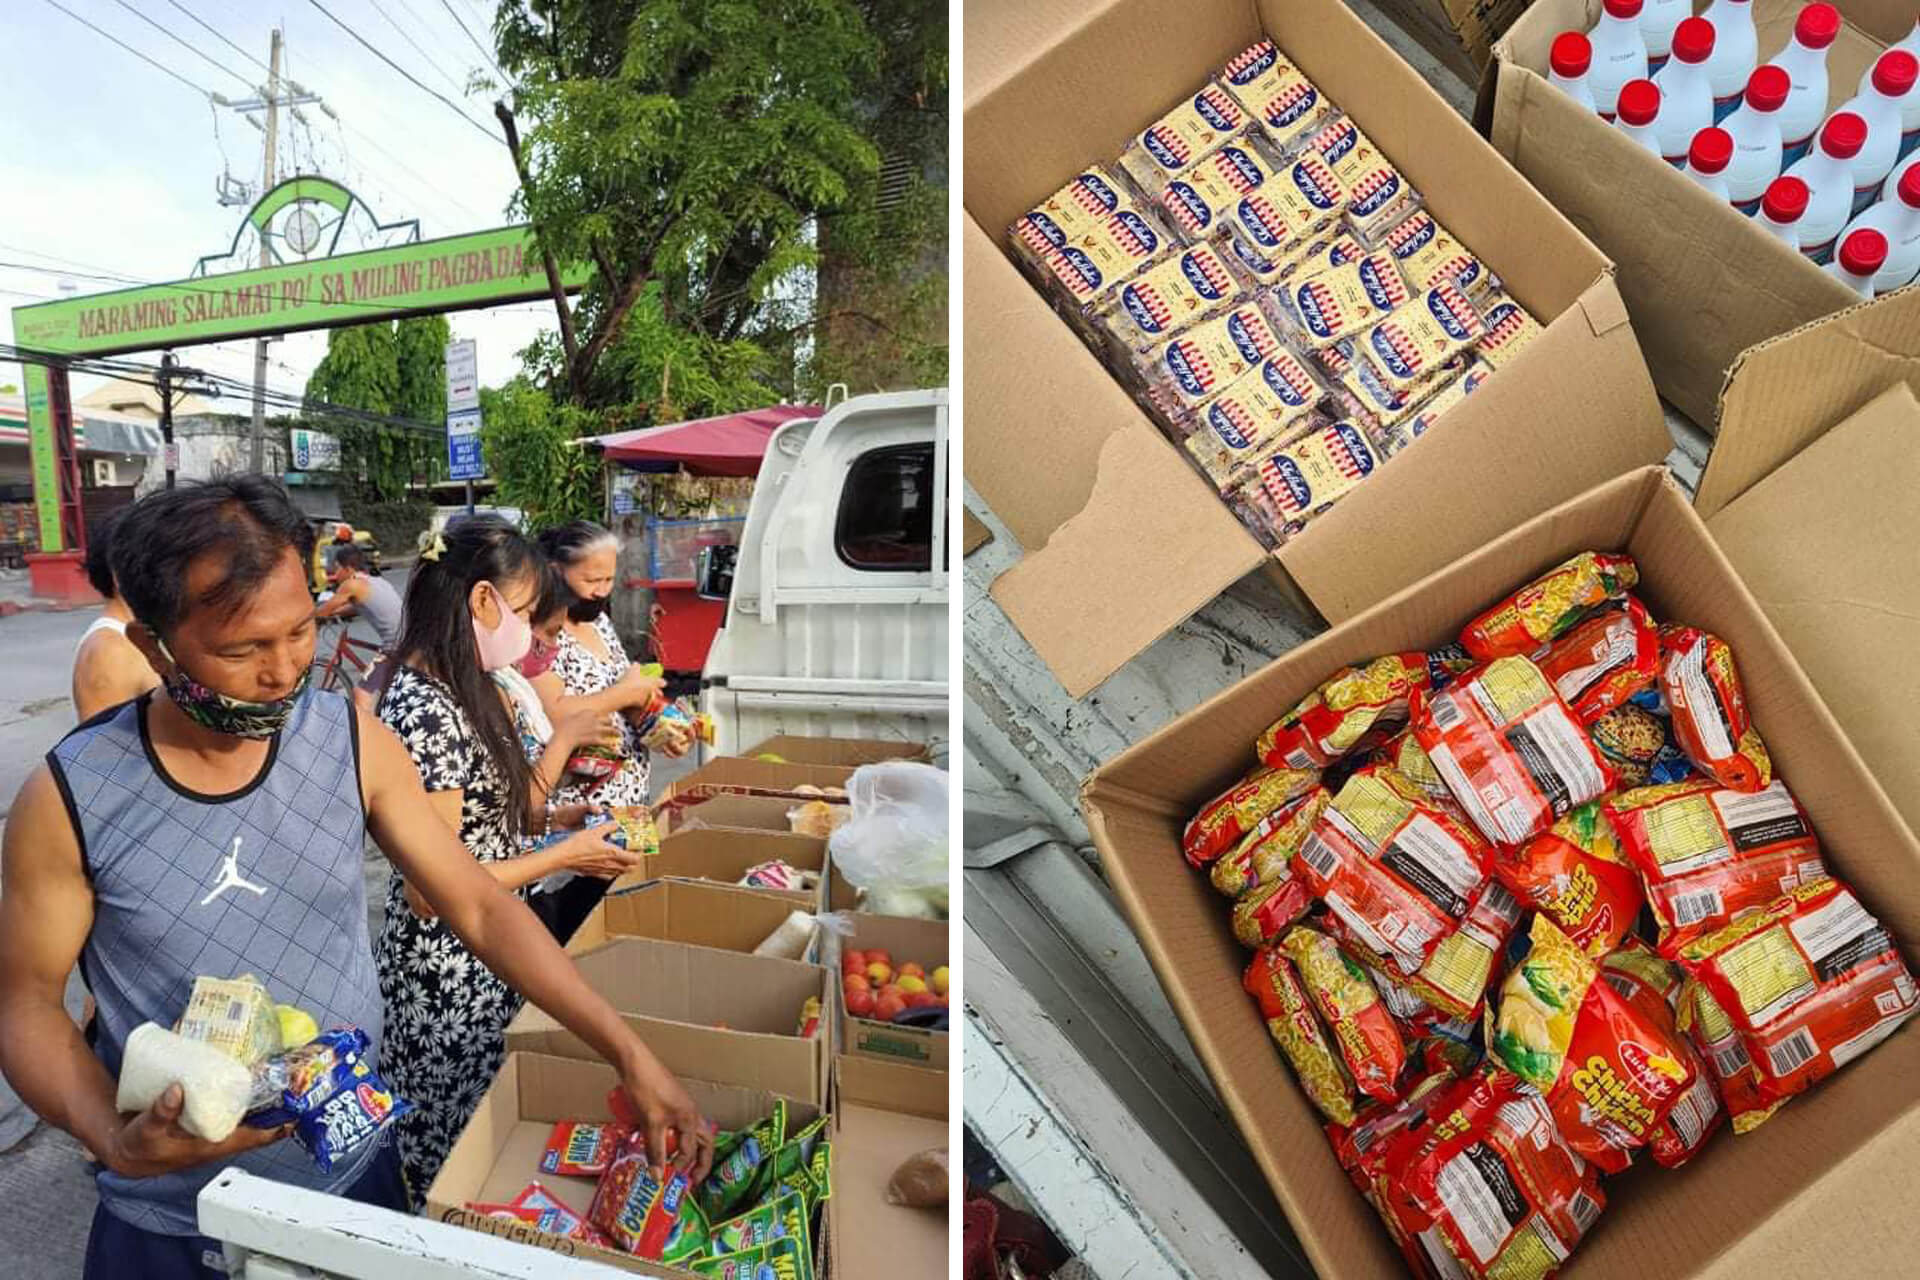 The Greenwoods Area 1 community pantry services communities along Sandoval Ave. in Pasig